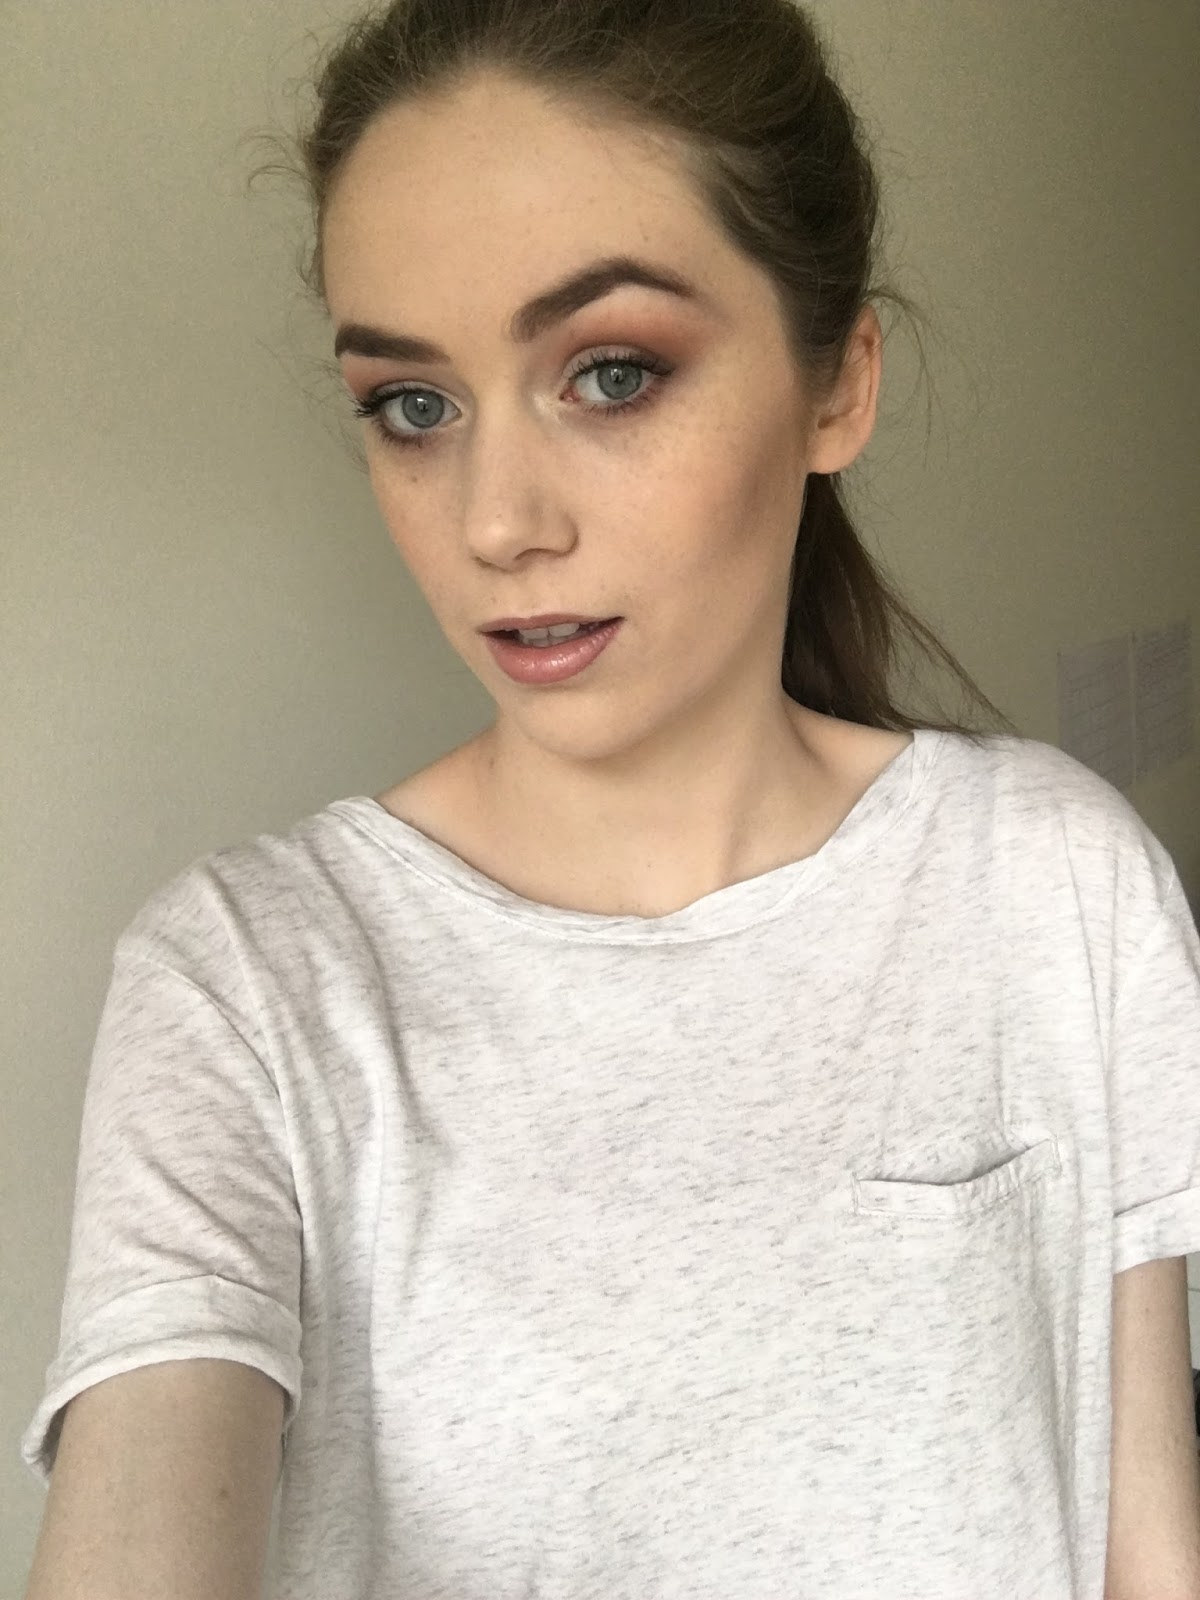 Everyday makeup look